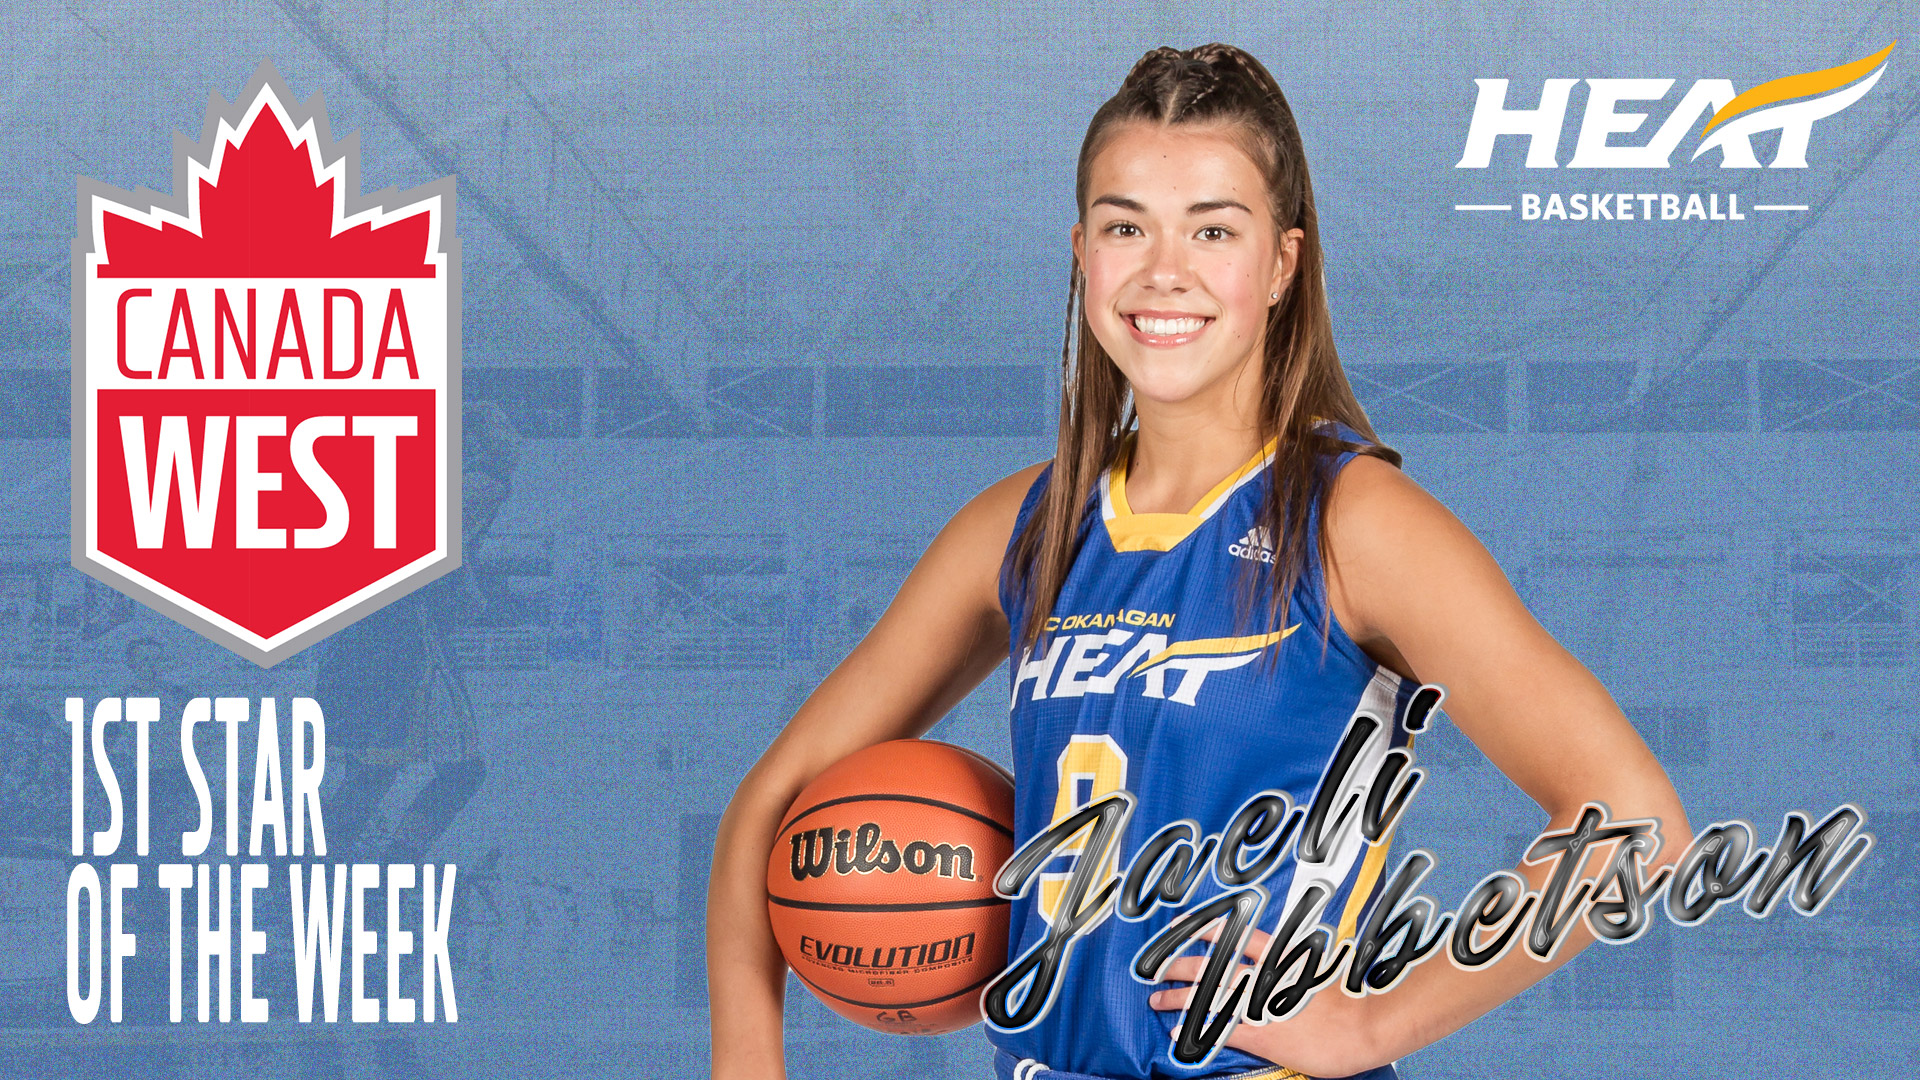 AWARDS: Jaeli Ibbetson selected top star of the week in Canada West